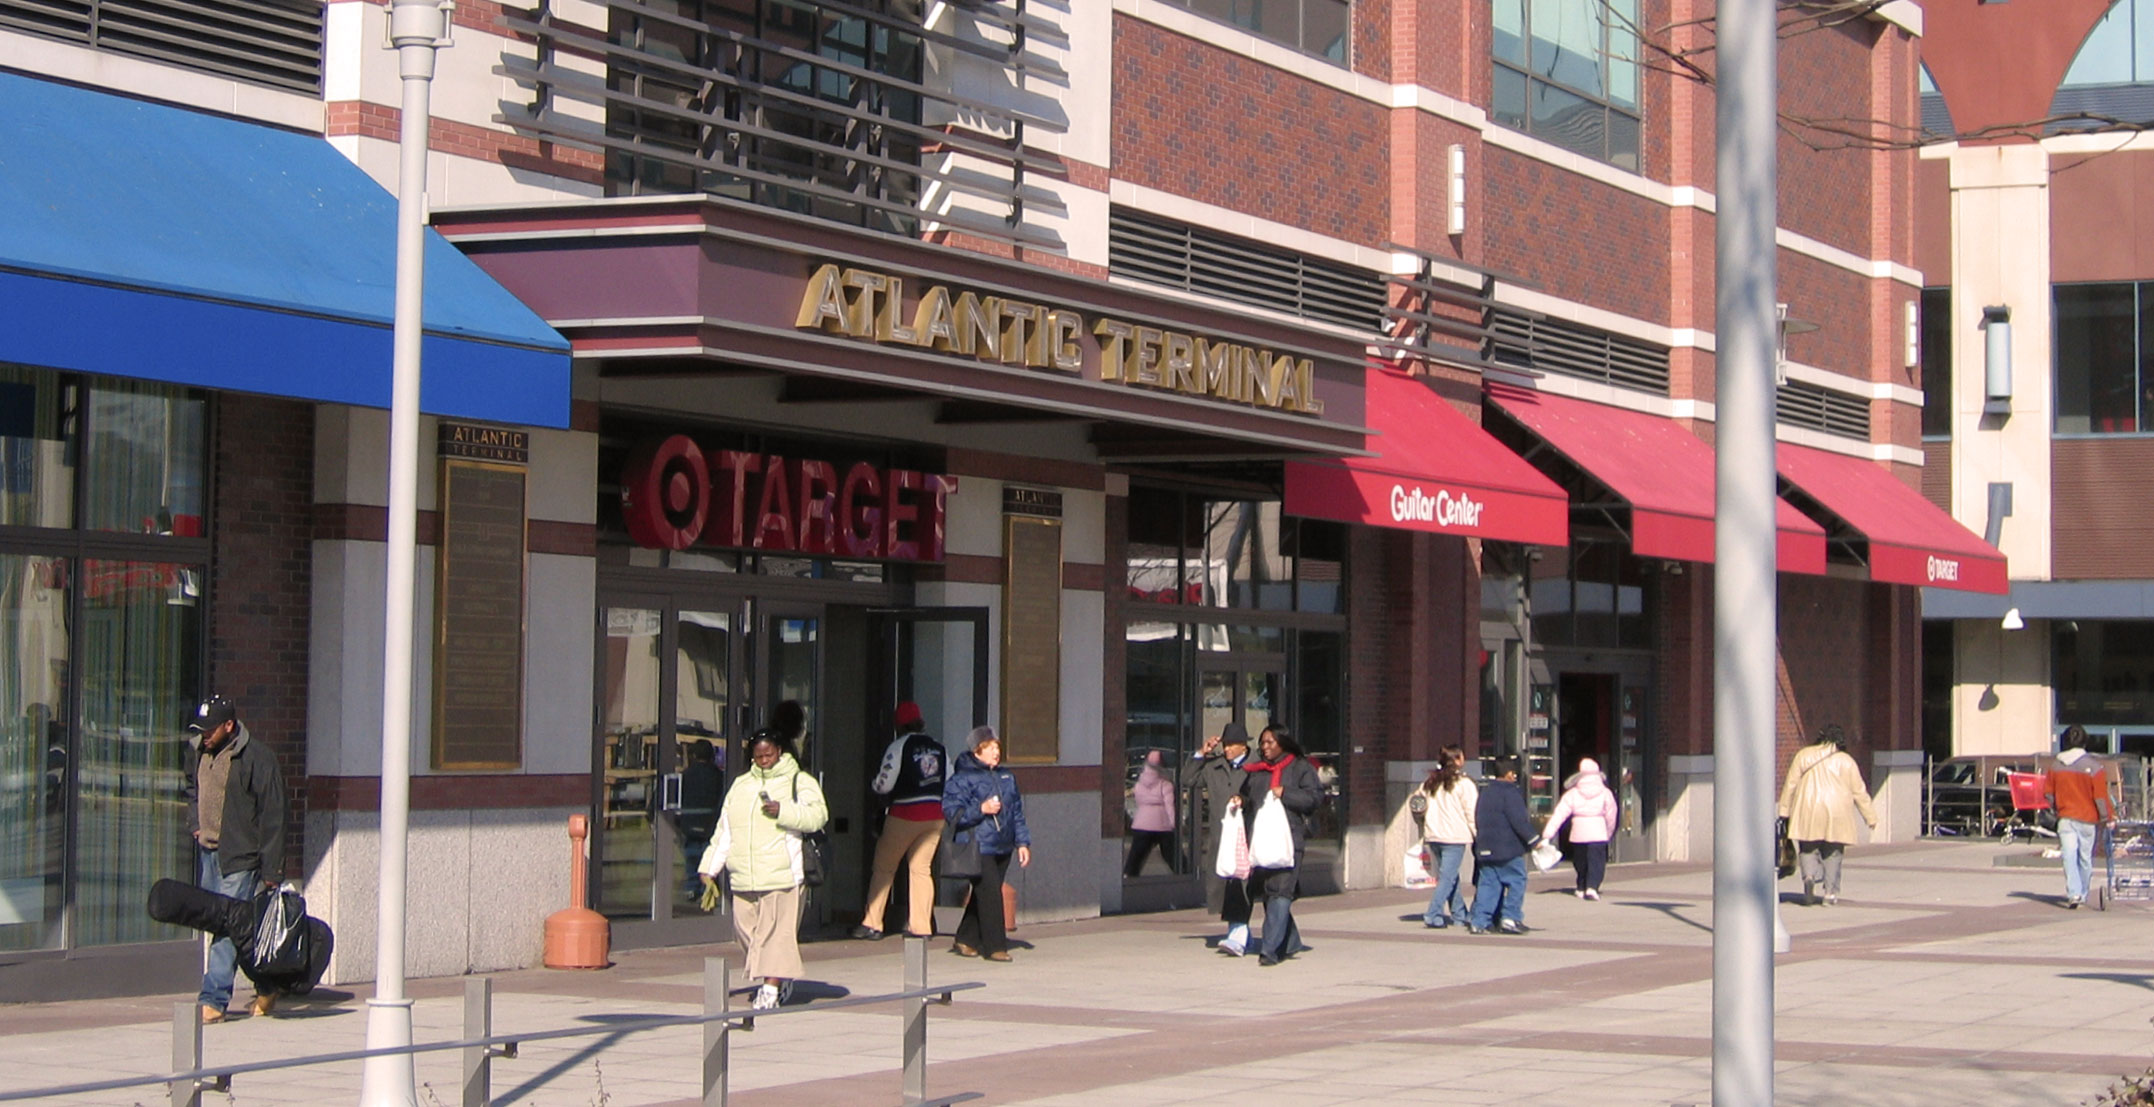 Atlantic Terminal is a shopping mall located on Atlantic Avenue surrounded by Hanson Place, Fort Greene Place and Flatbush Avenue in the Fort Greene section of Brooklyn, New York. It is located across the street from the older Atlantic Center Mall (via a small enclosed bridge from Target) which was developed by the same real estate company.